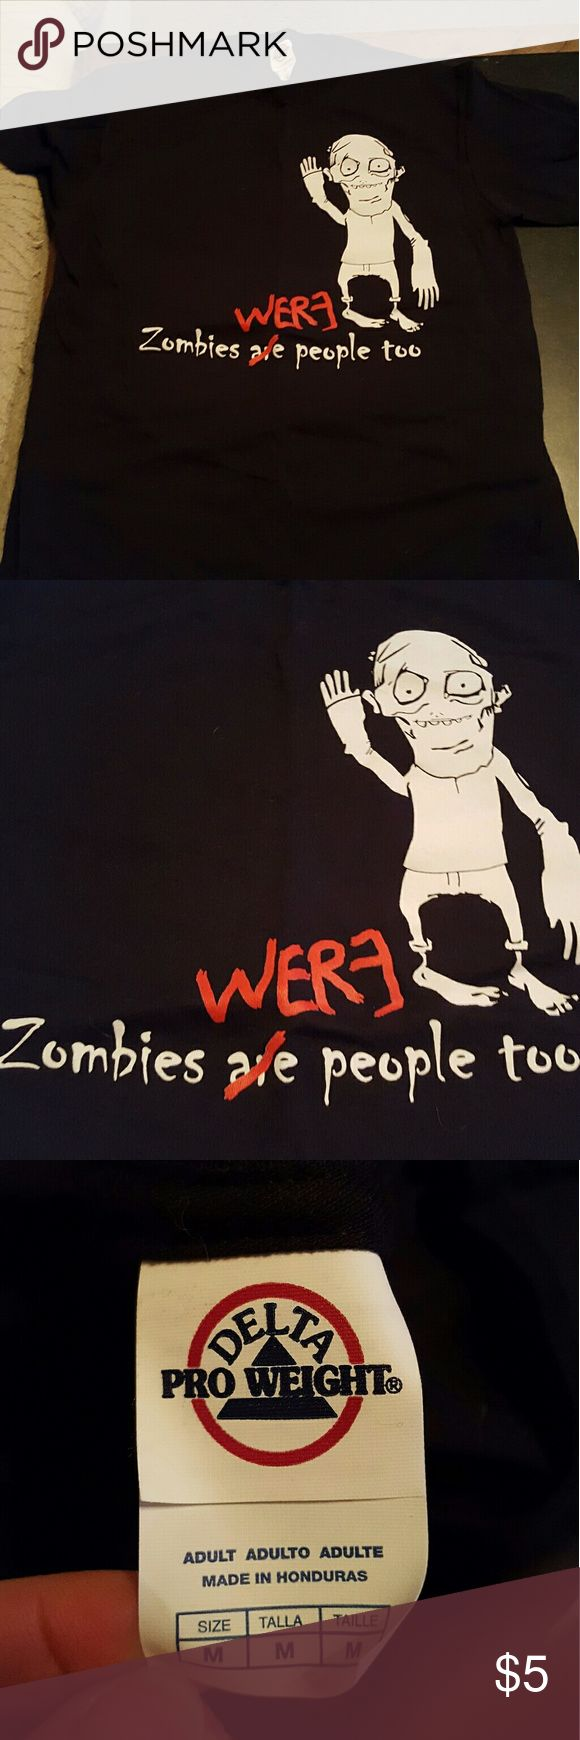 "Funny zombie t-shirt Black adult unisex medium ""Zombie were people too"" t-shirt. Never worn. From smoke free home. Enjoy! Delta Pro Weight Tops Tees - Short Sleeve"